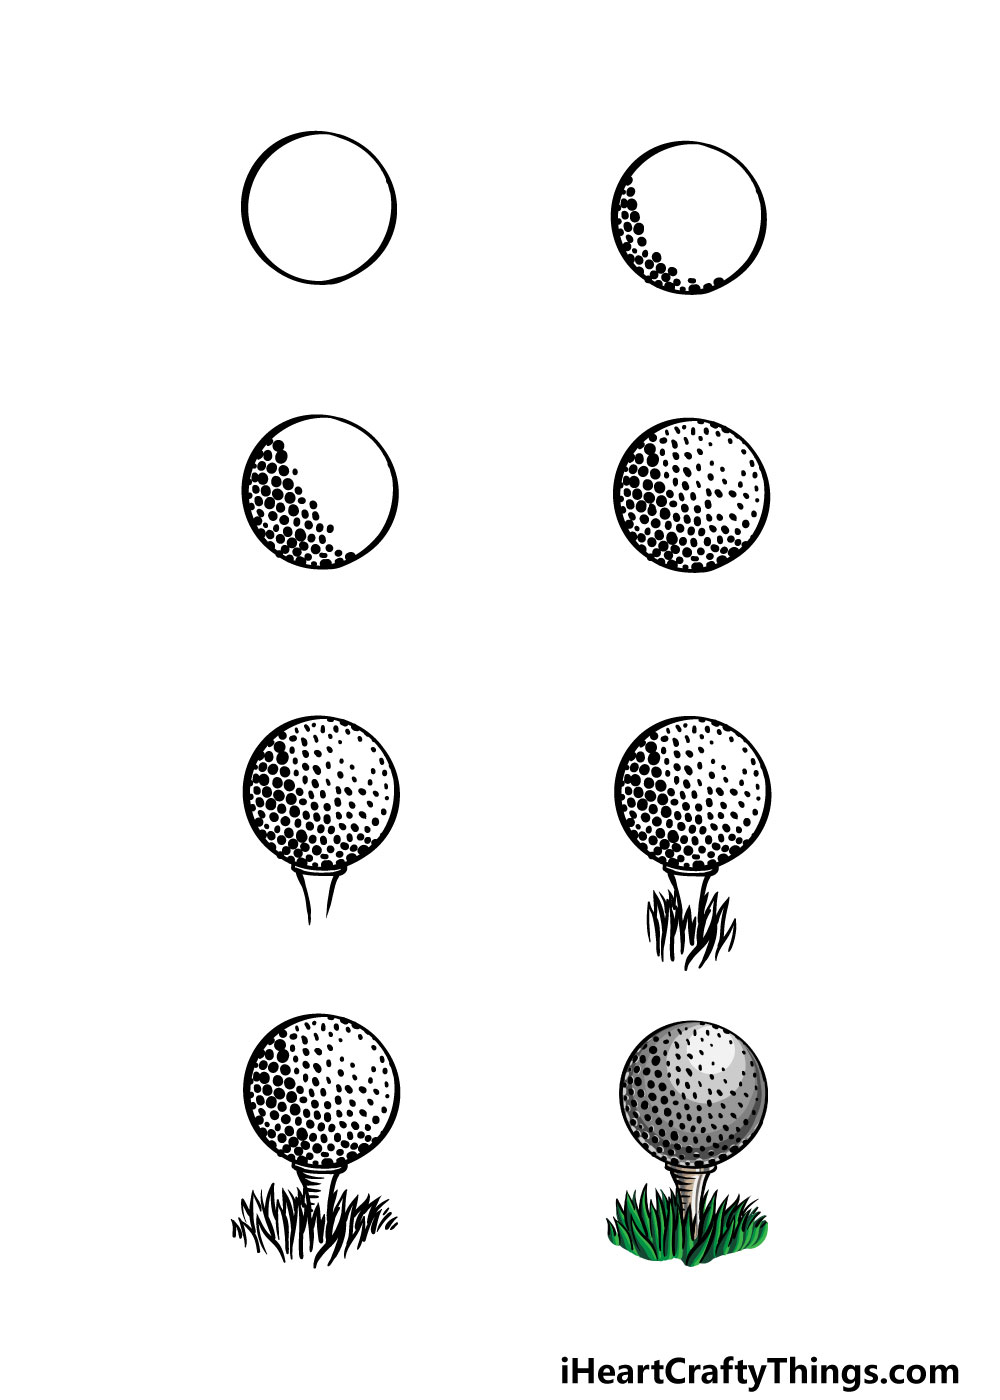 how to draw a golf ball in 8 steps